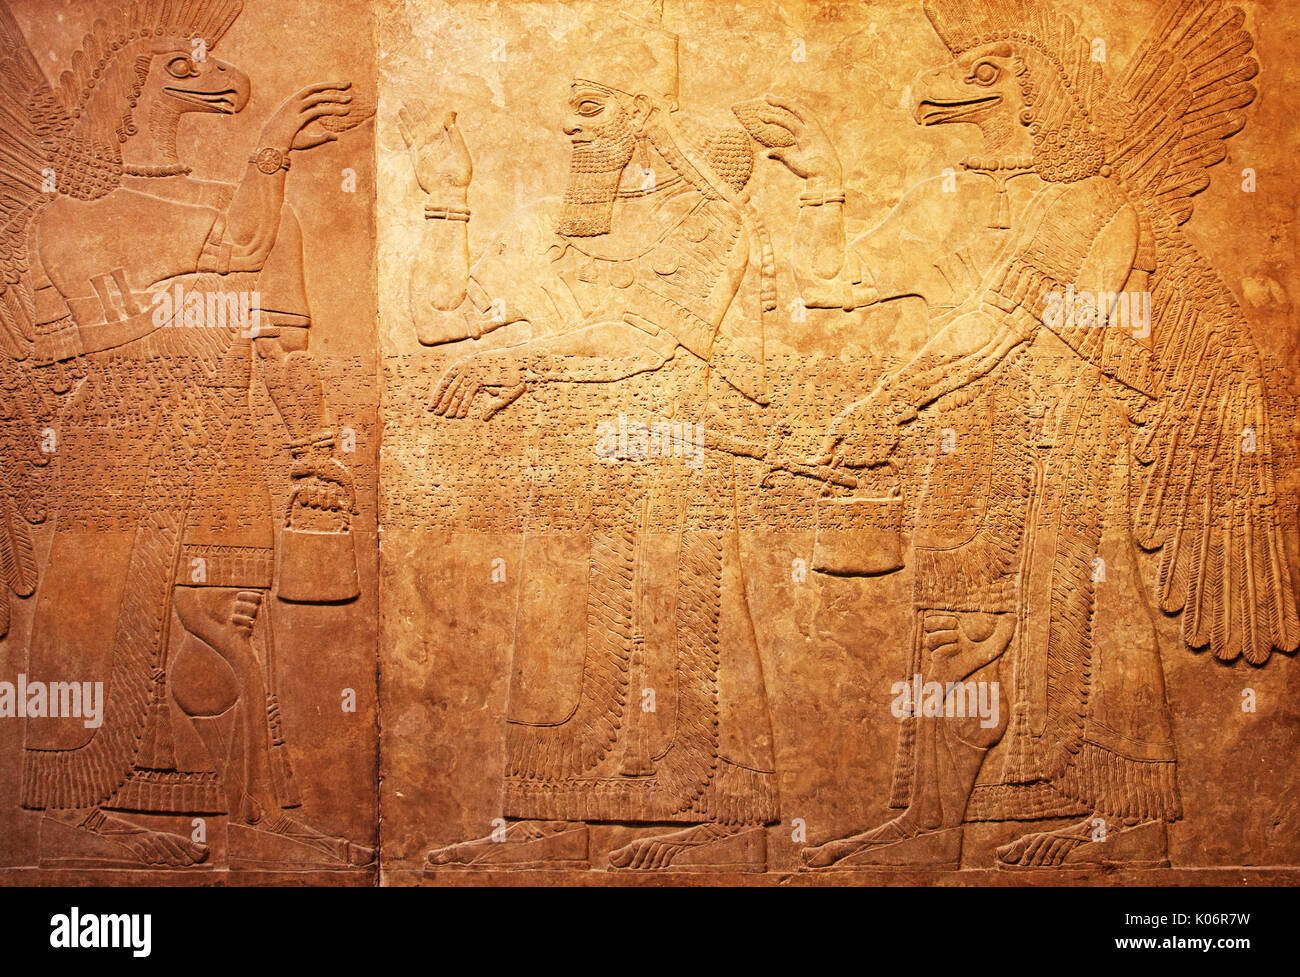 King of sumer stock photos images